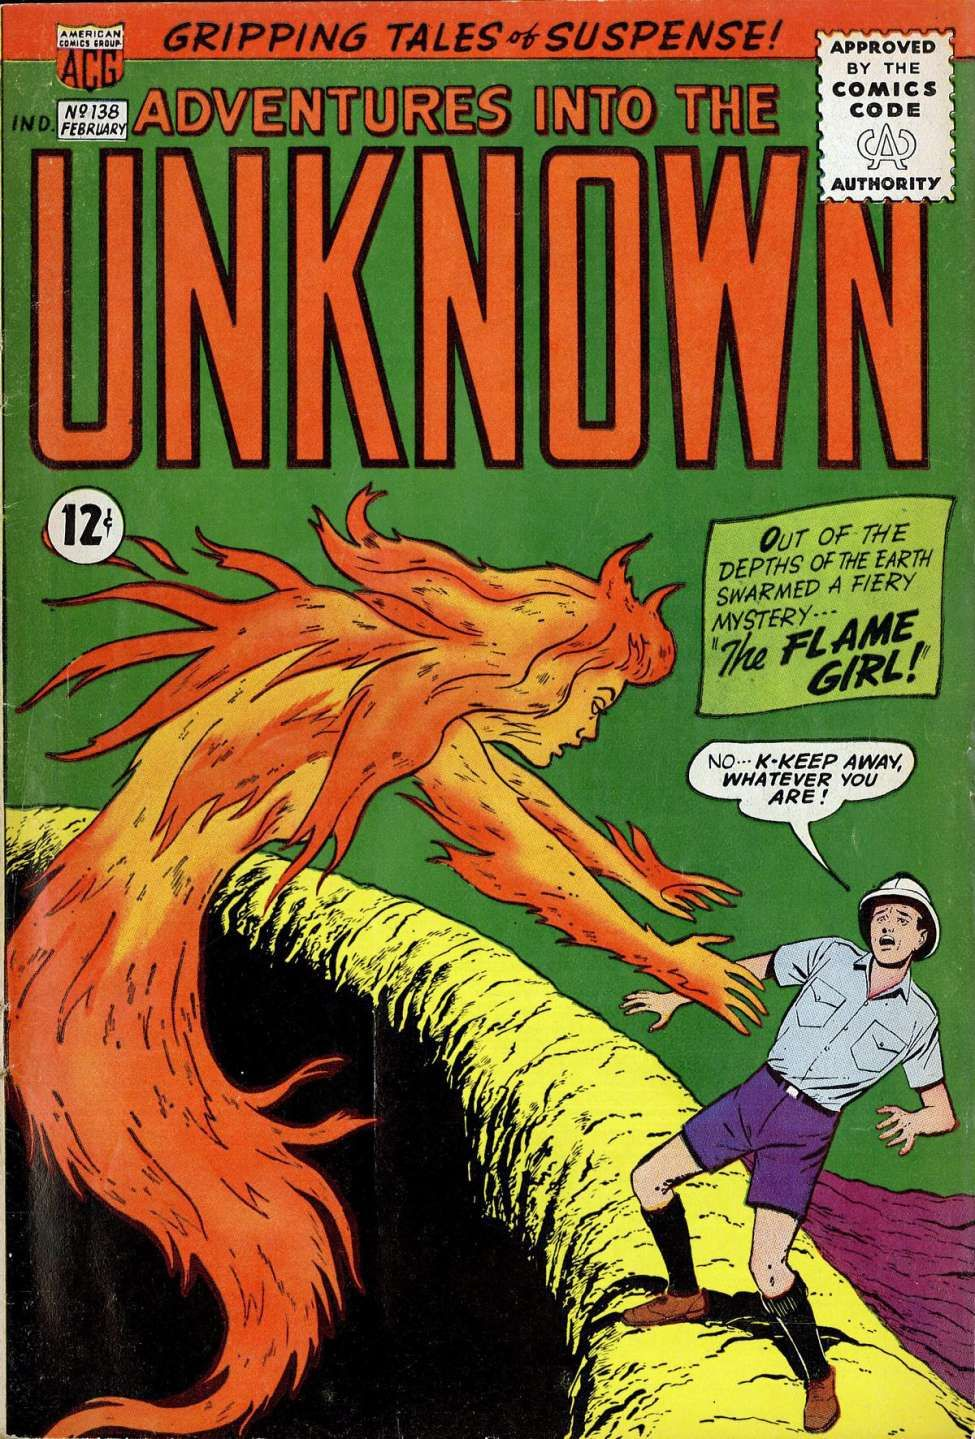 Adventures into the unknown 138 comics graphic novel